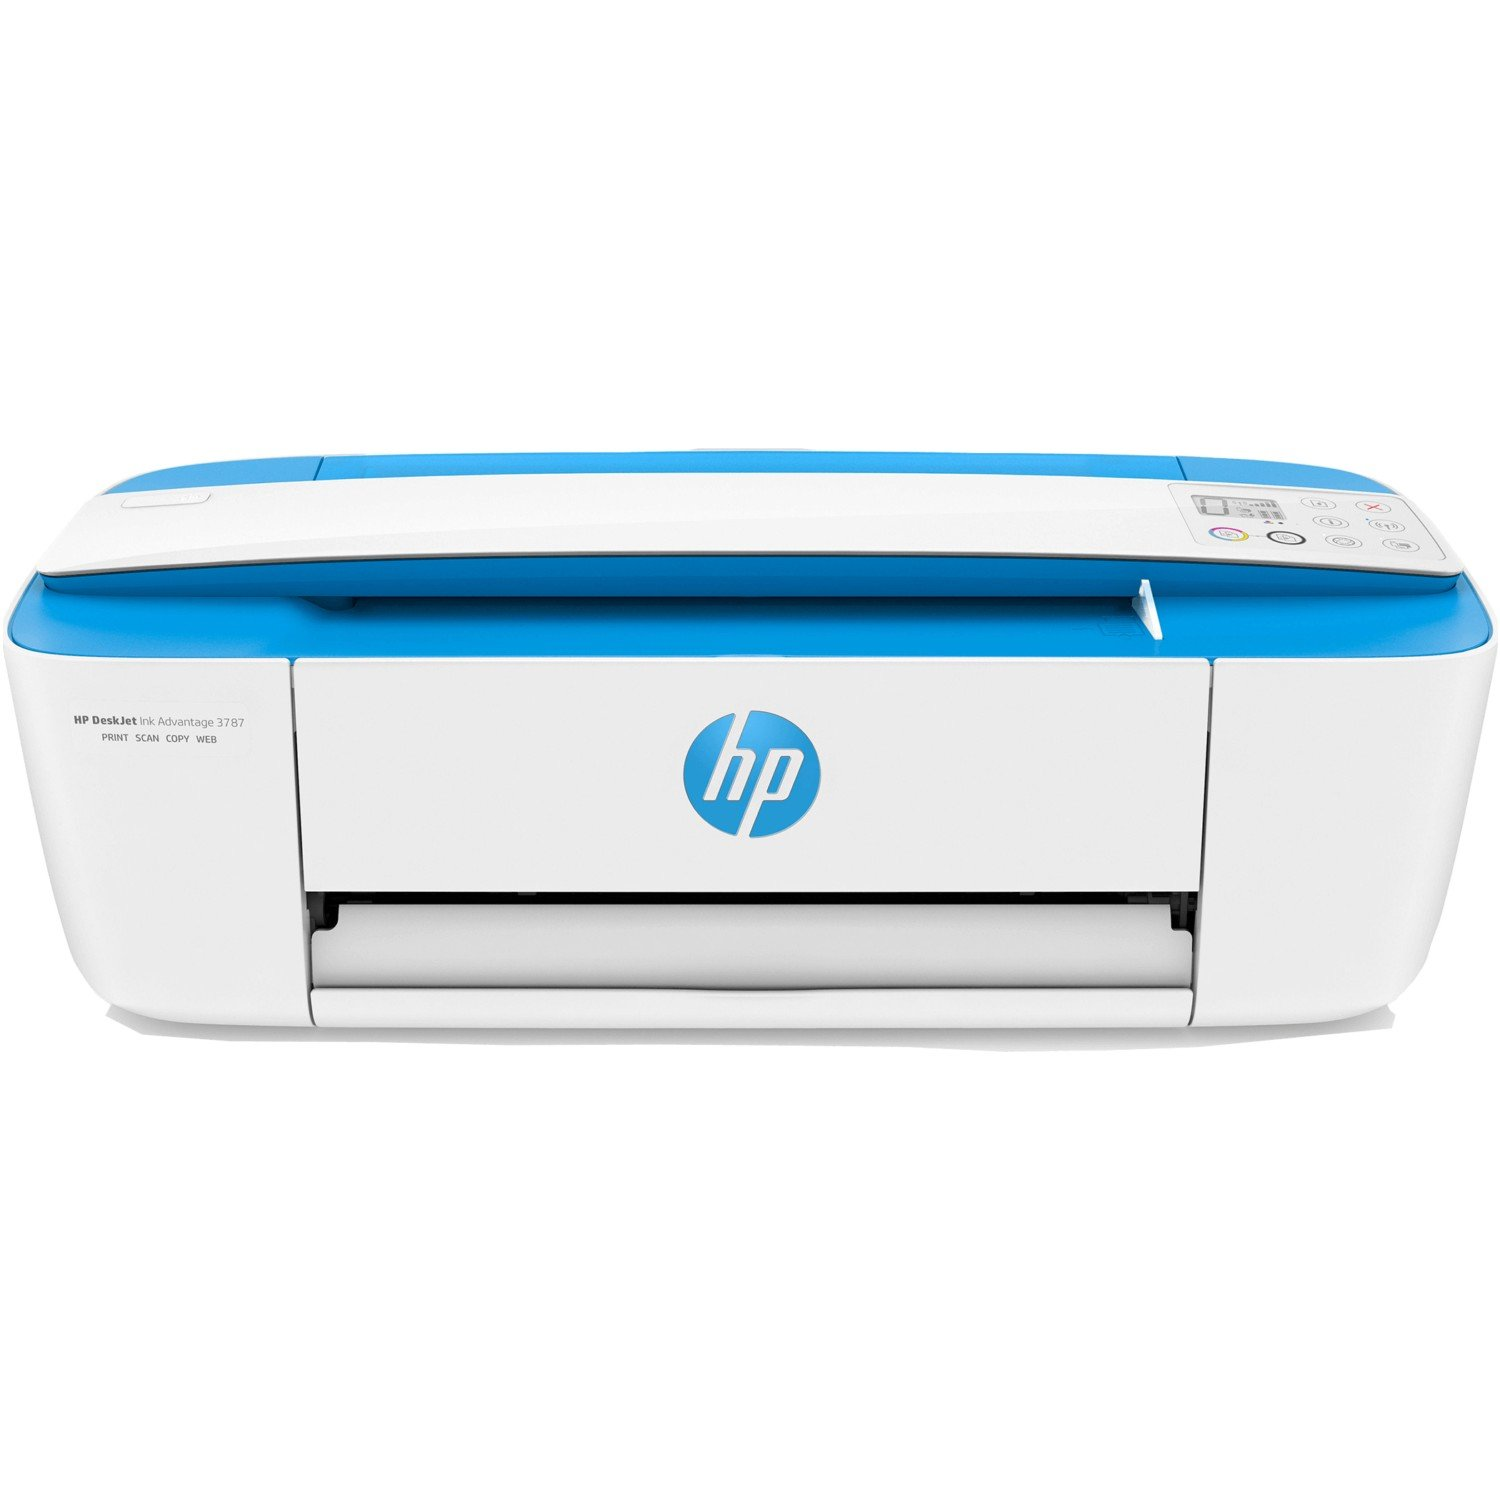 HP DeskJet Ink Advantage 3787 All-in-One Printer